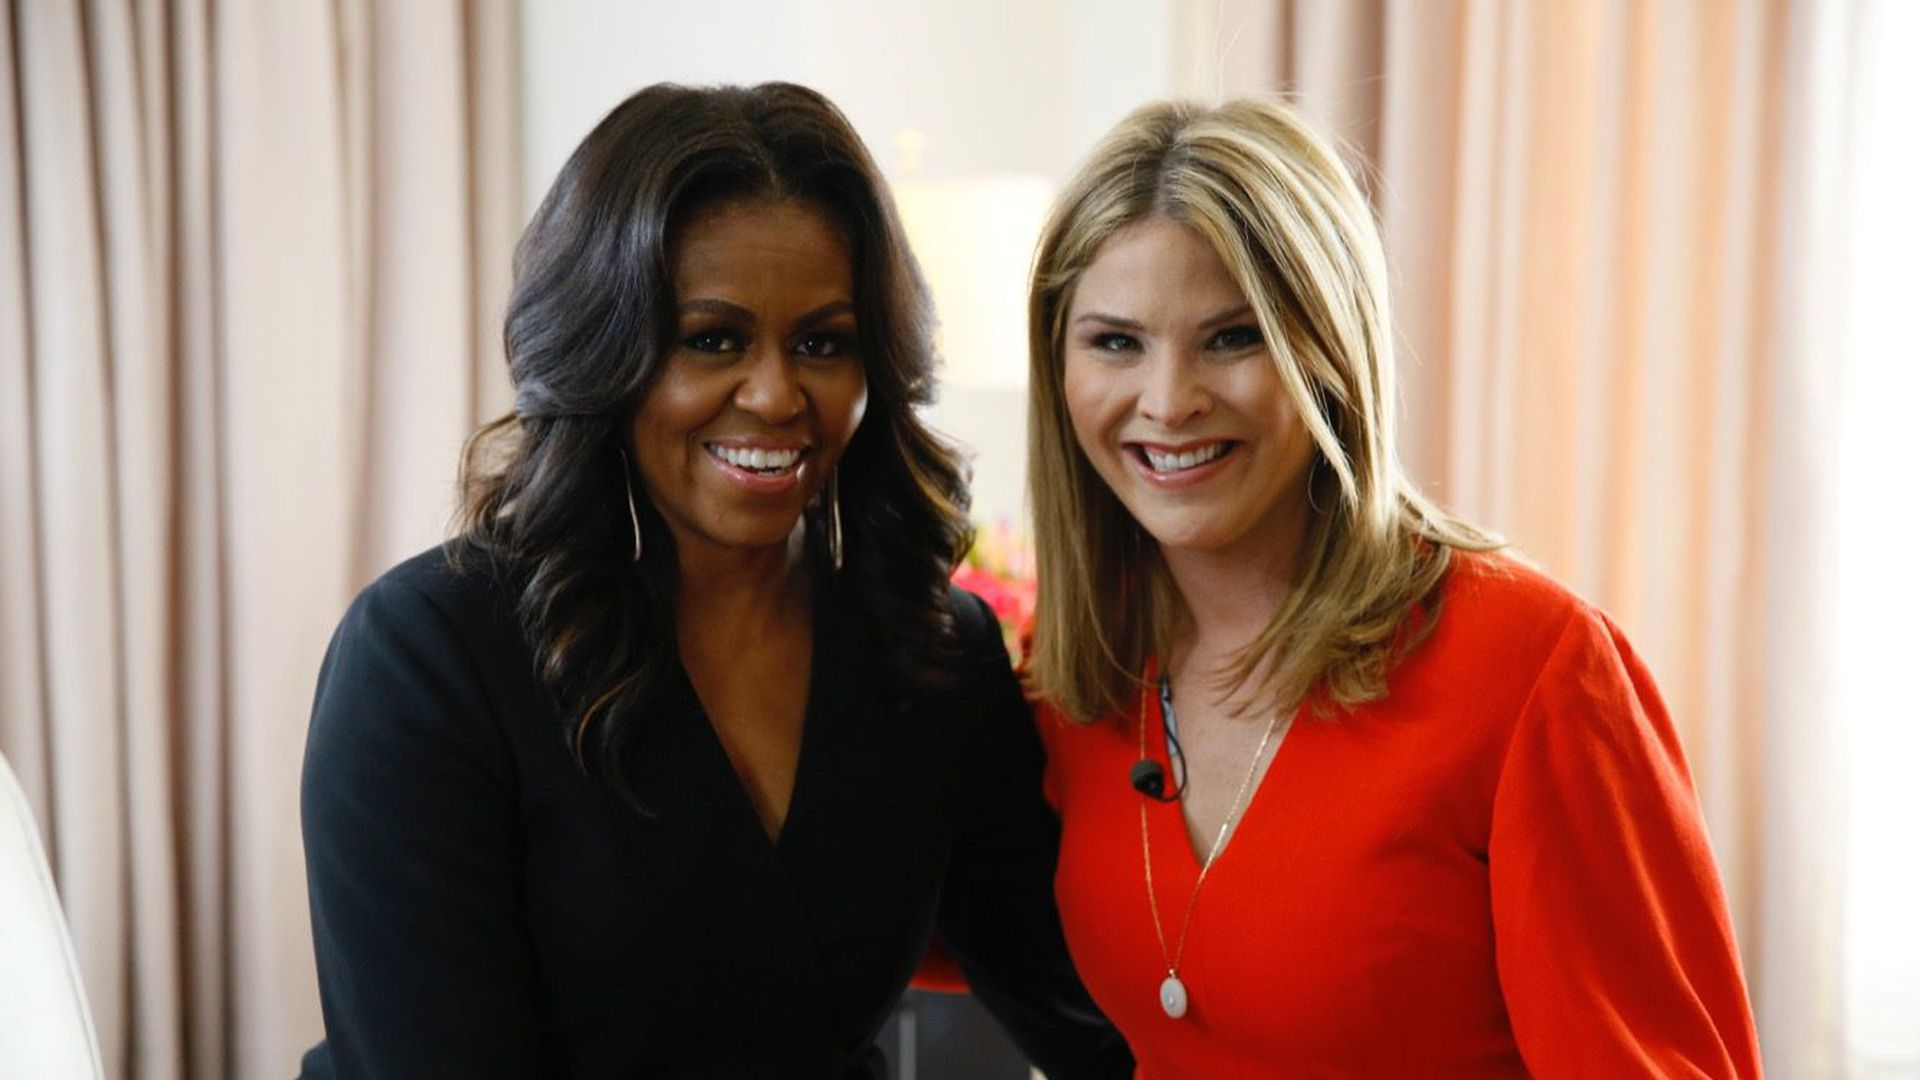 Michelle Obama and Jenna Bus